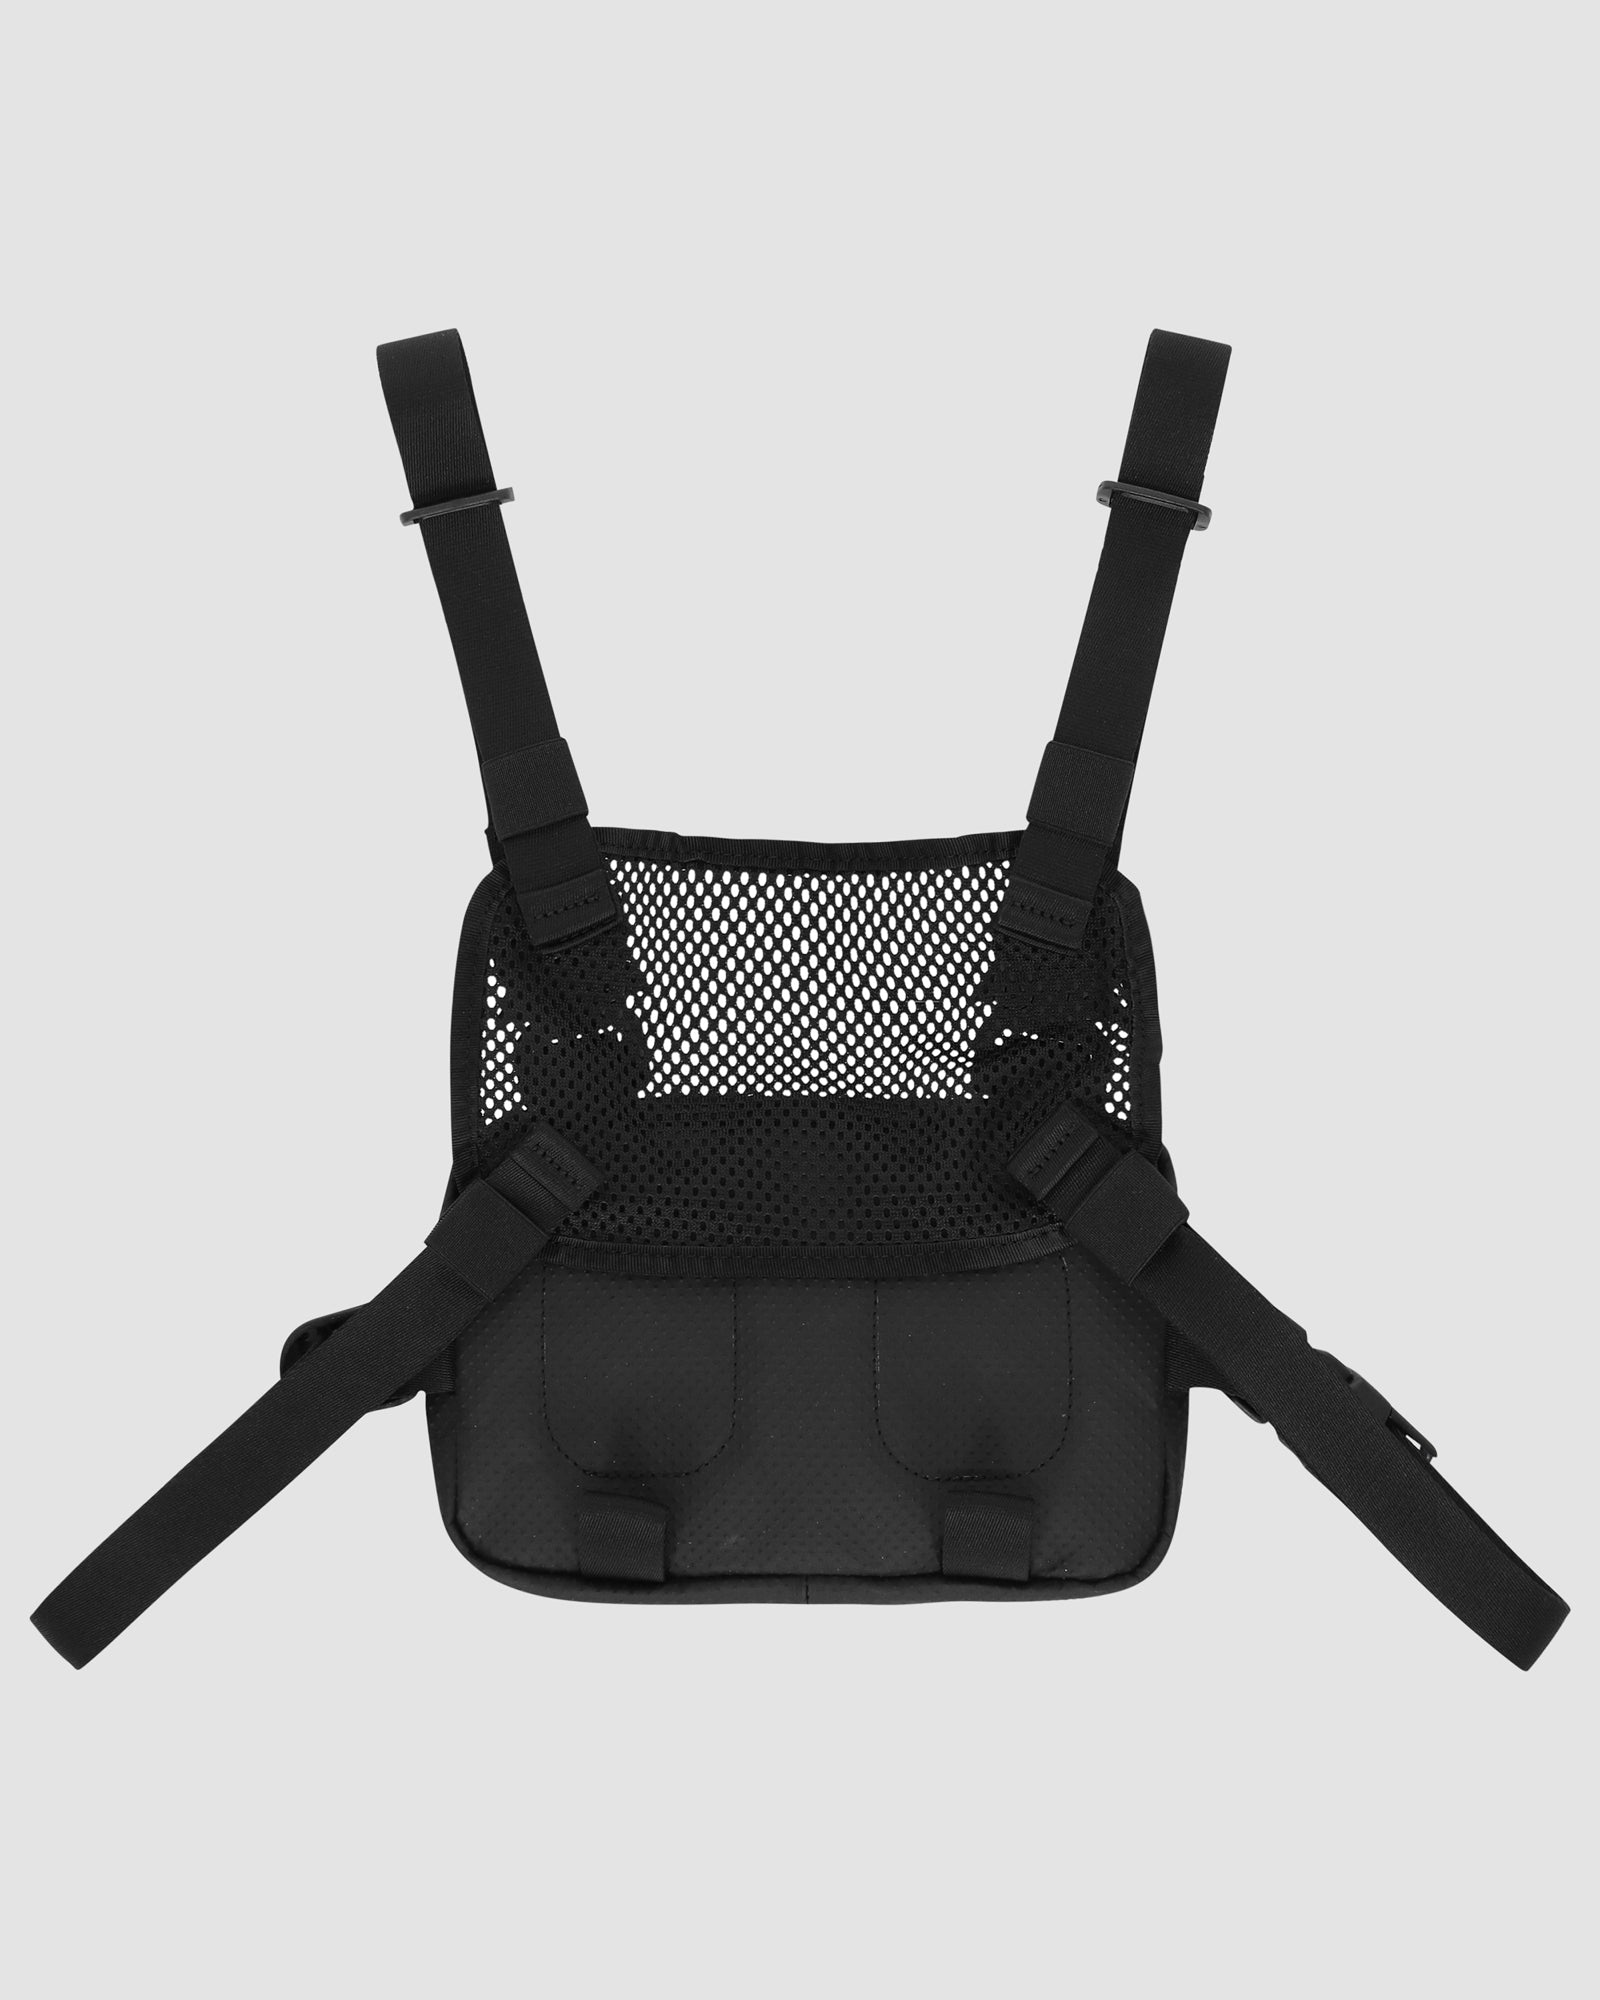 1017 ALYX 9SM | CLASSIC MINI CHEST RIG | Chest Rig | Accessories, bag, Bags, BLACK, CHEST BAGS, CHEST RIG, Google Shopping, Man, S20, SS20, UNISEX, Woman